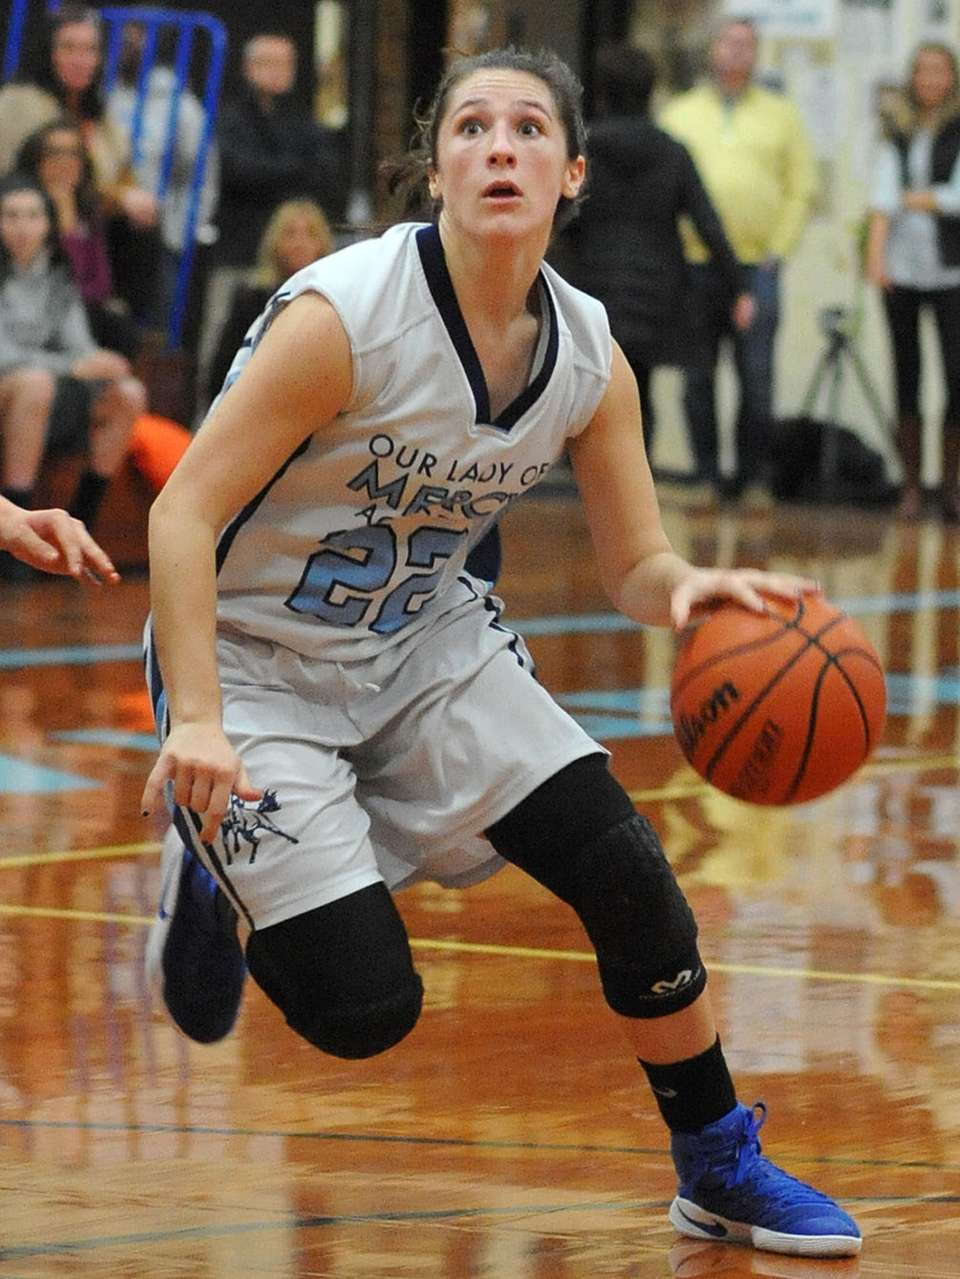 Lauren Hammersley #22 of Our Lady of Mercy